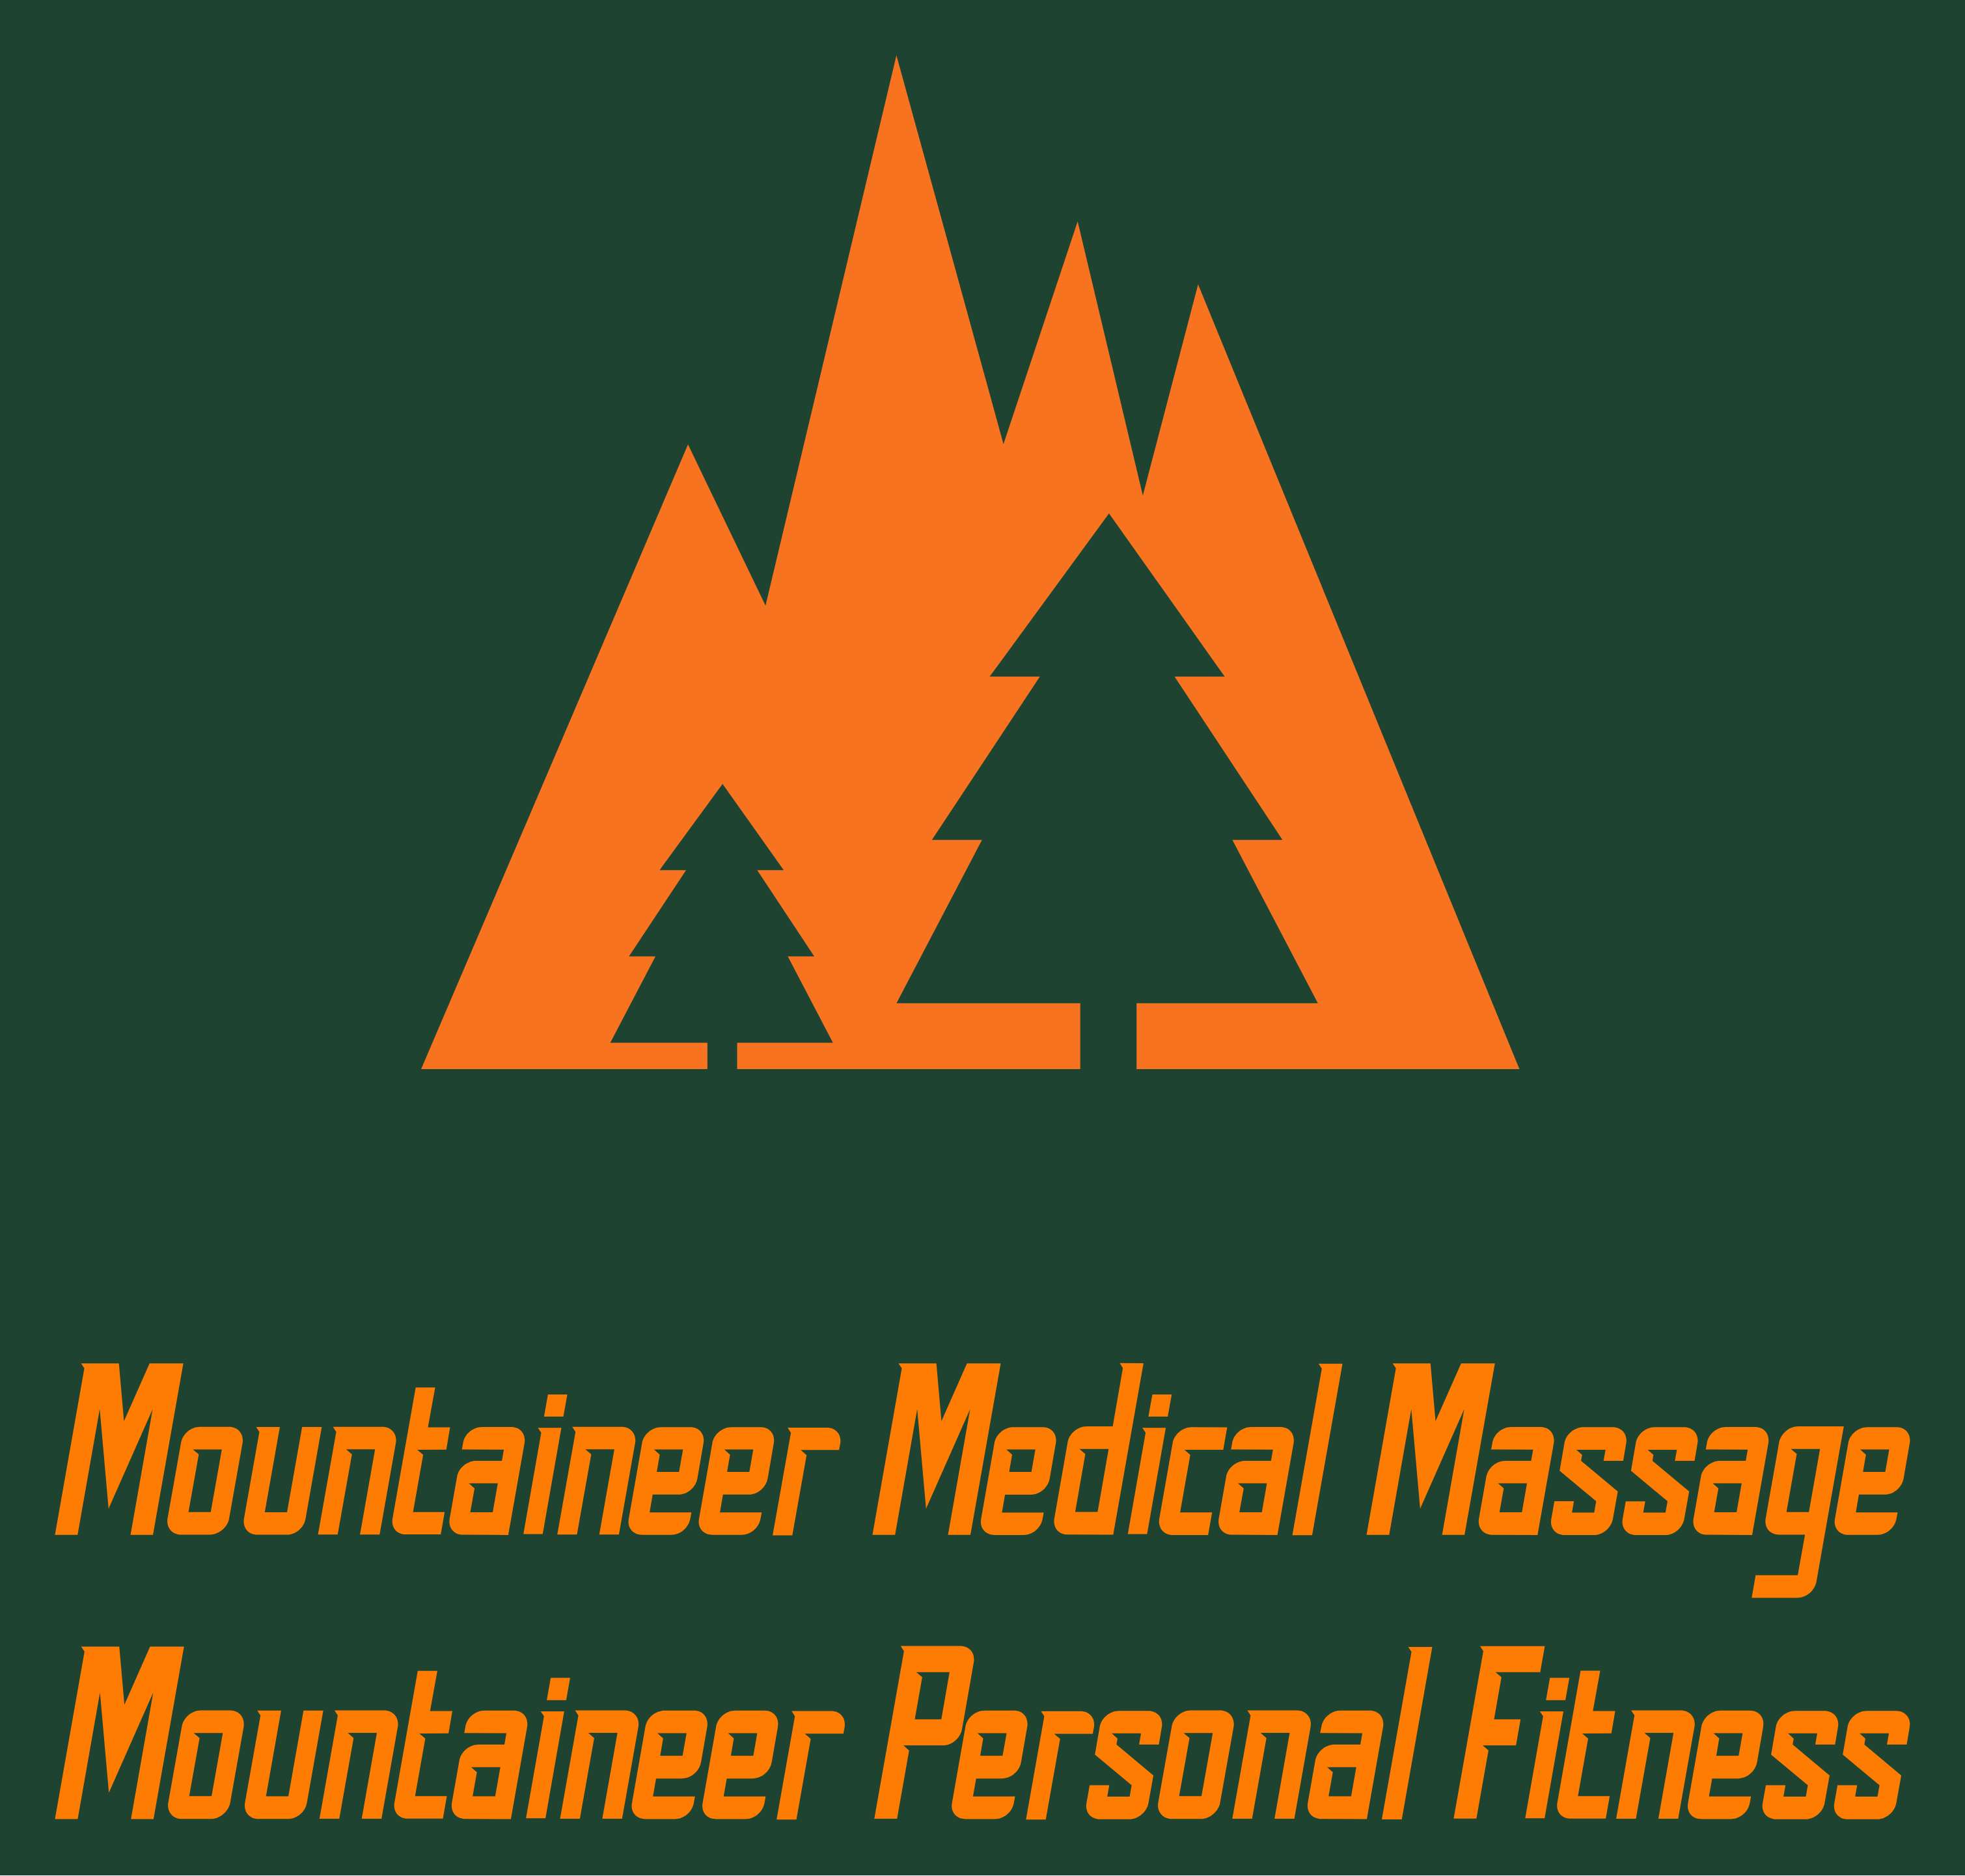 Mountaineer Medical Massage and Mountaineer Personal Fitness